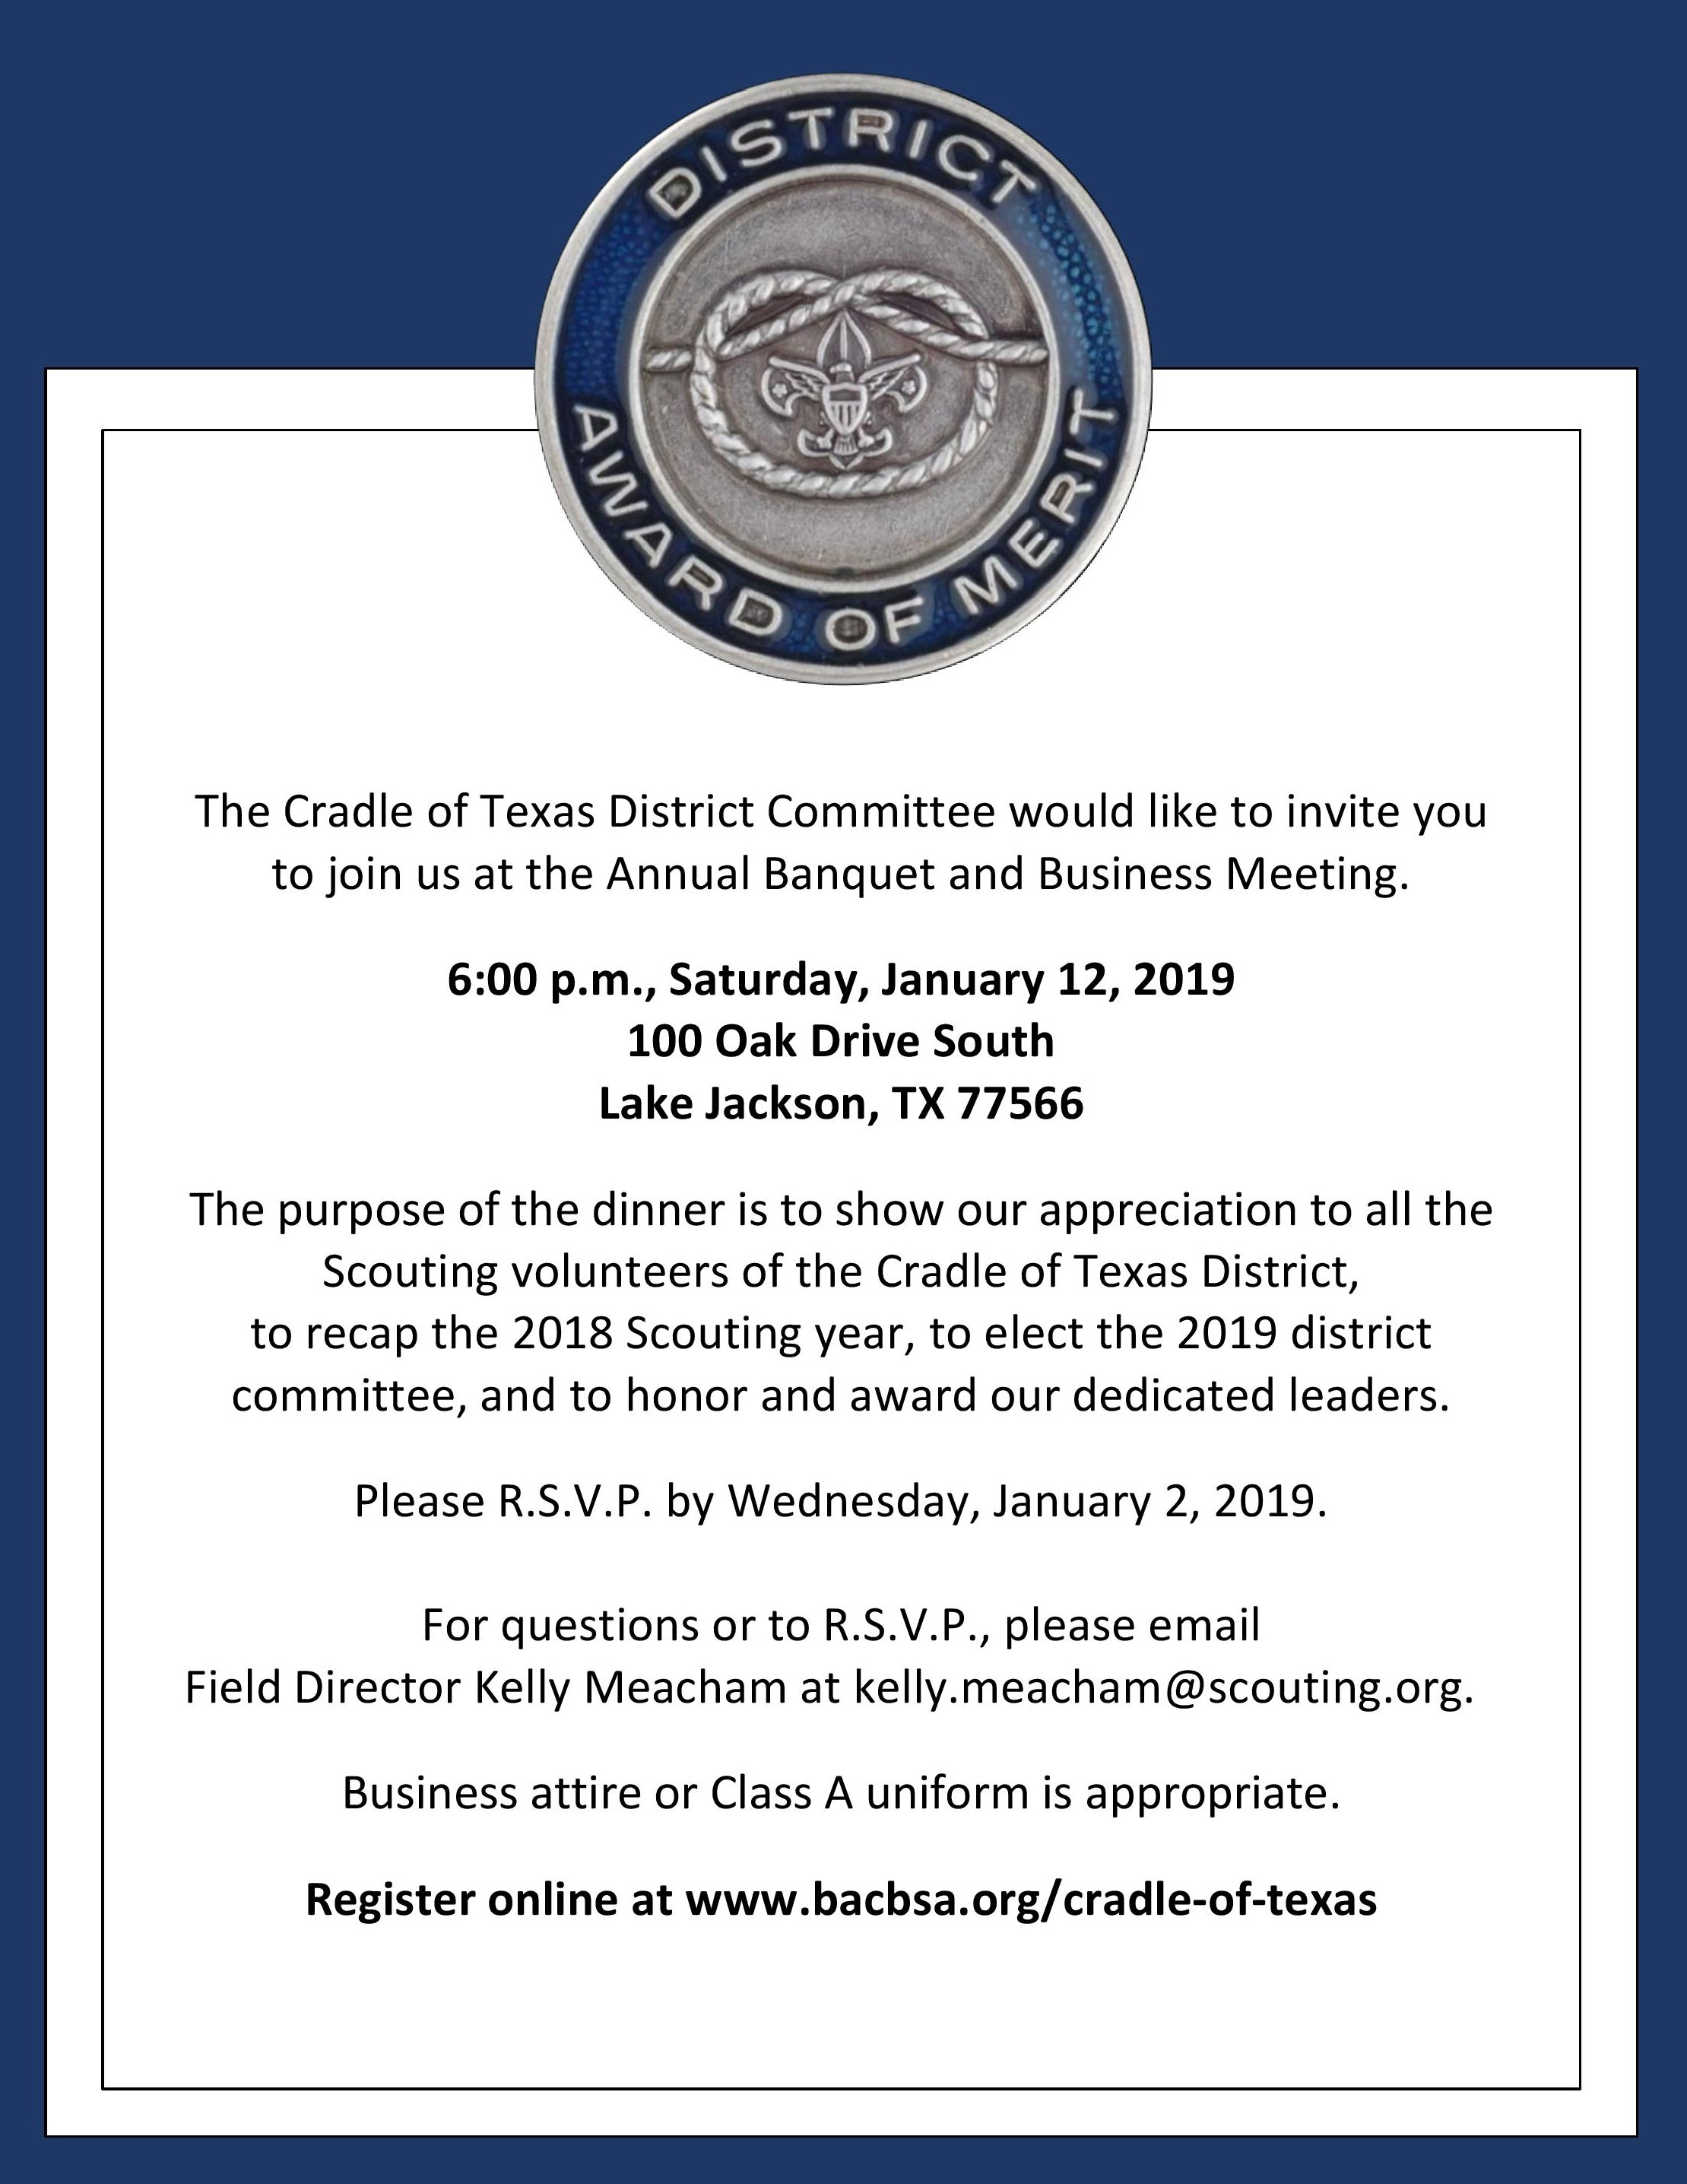 Cradle of Texas Annual Banquet & Business Meeting